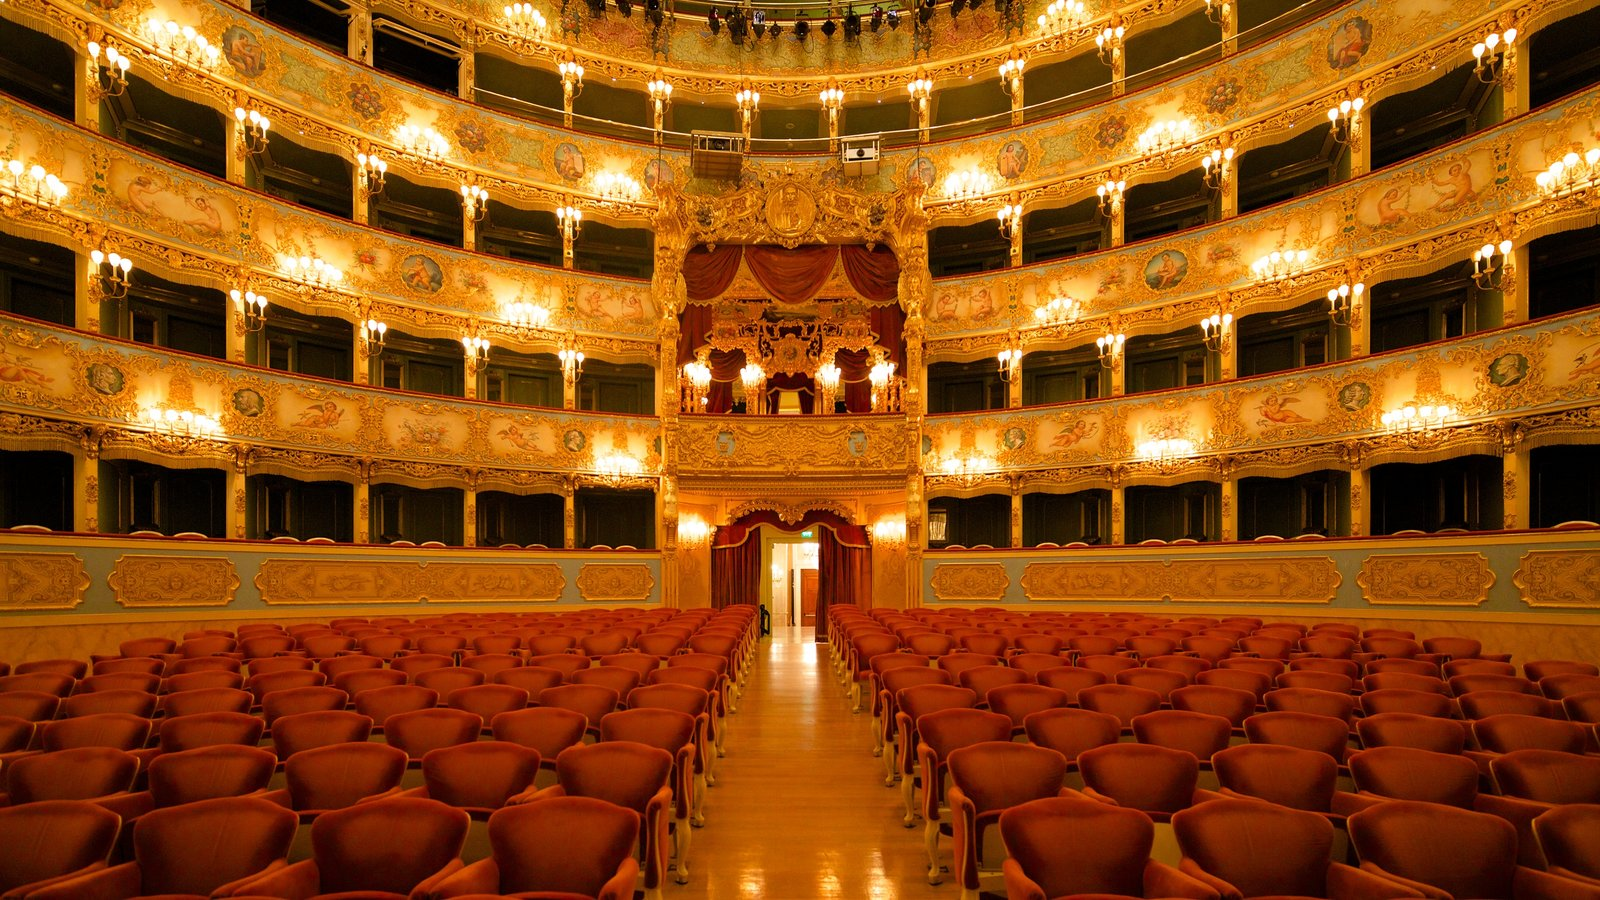 La Fenice Opera House showing theater scenes, heritage architecture and interior views